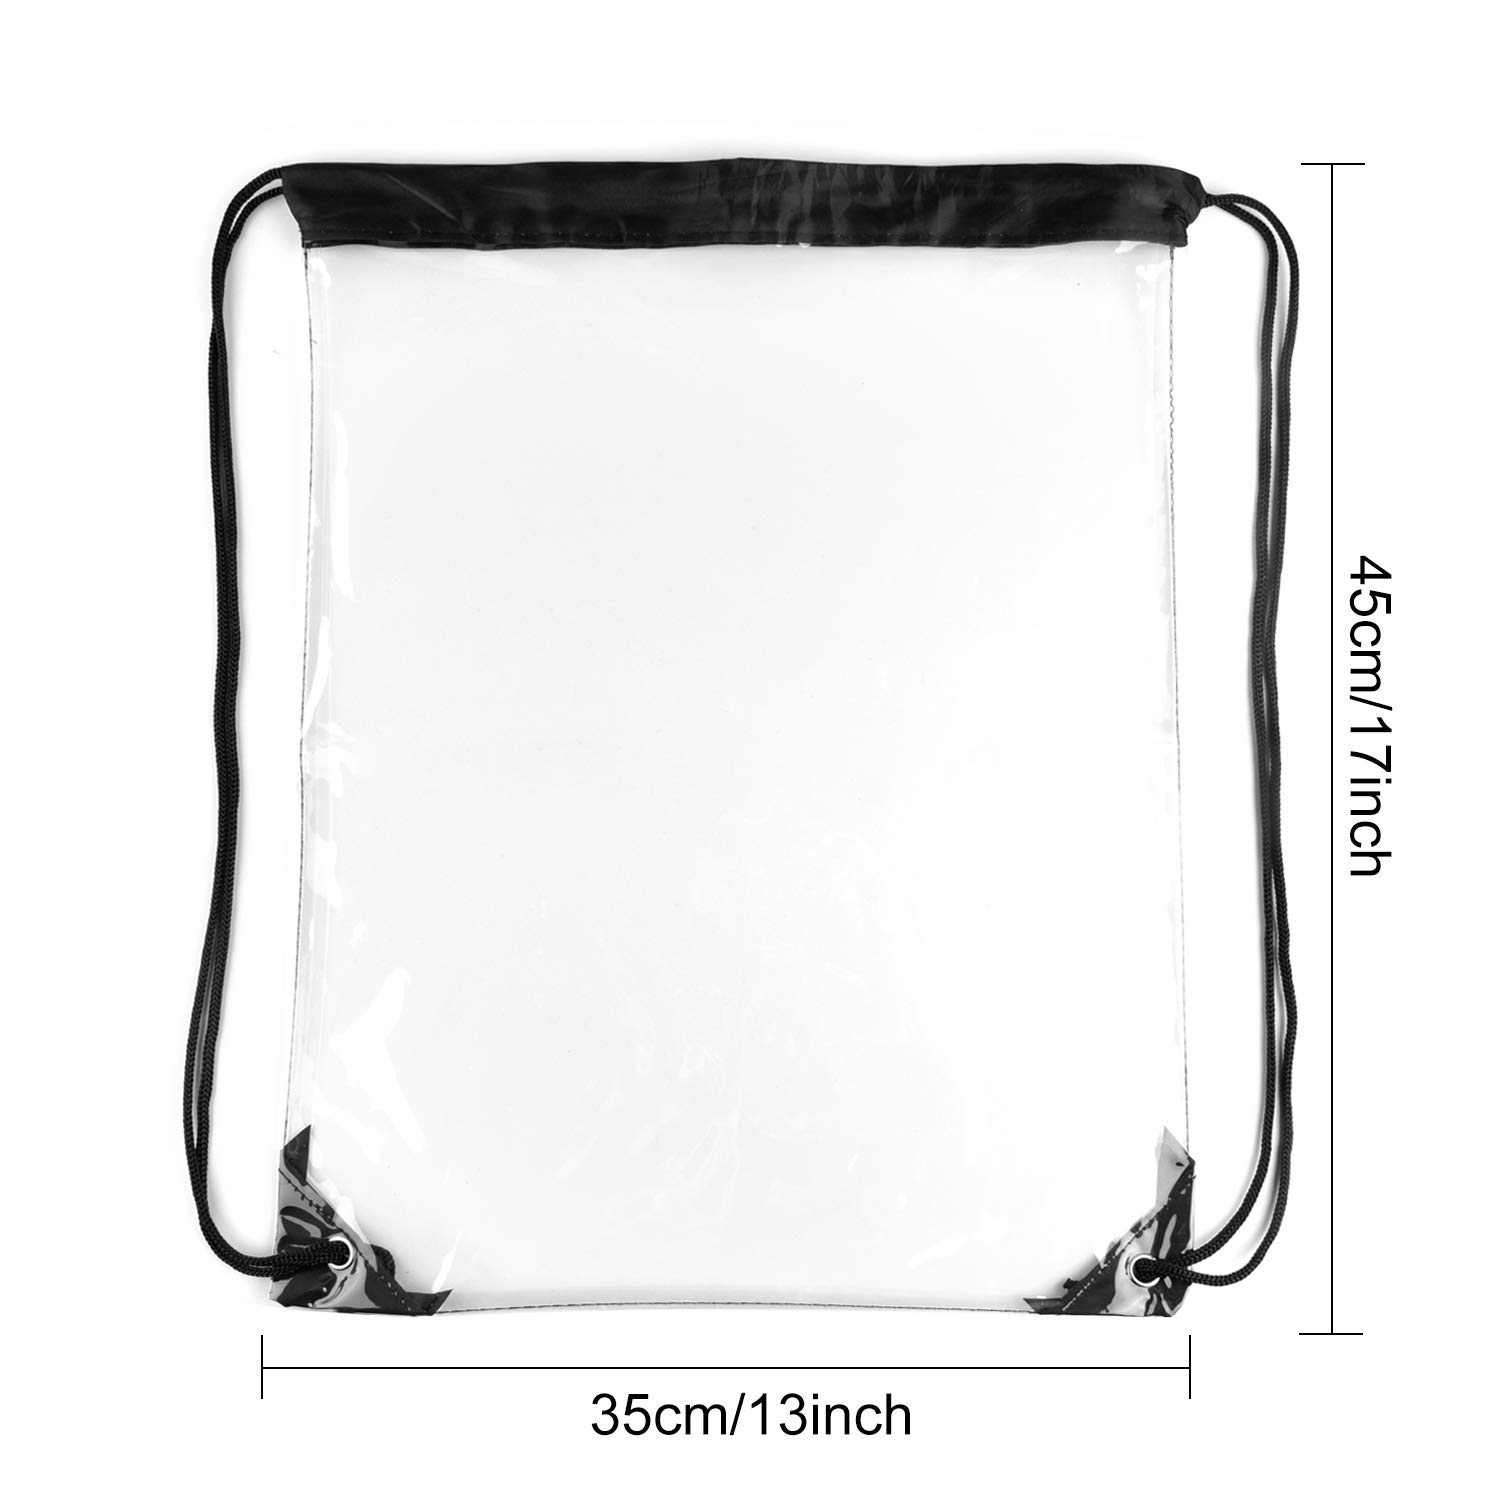 fd490458f543 4 Pack Clear Drawstring Backpack Waterproof String Backpack Cinch Stadium  Bags Traveling Sport Bags